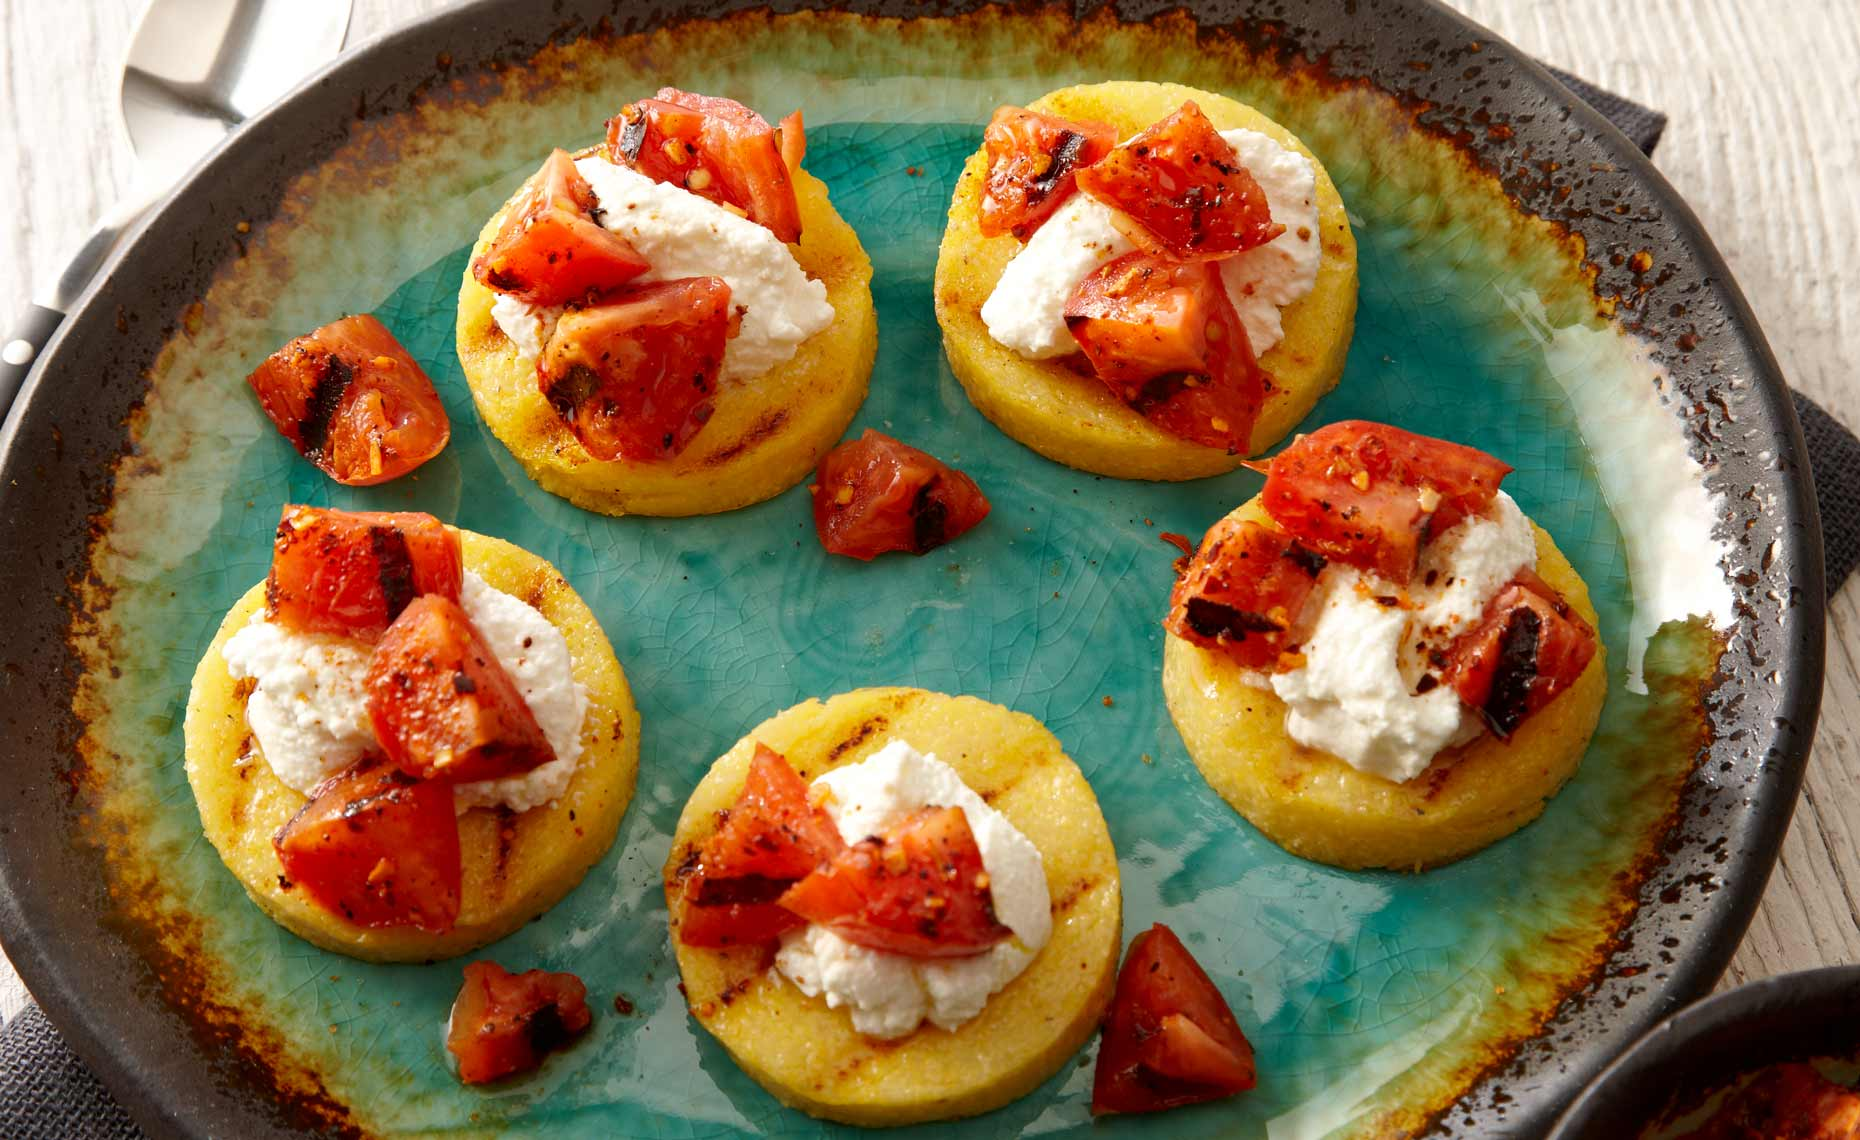 appetizers-fruits-vegetables-photographers-bruschetta-polenta-07